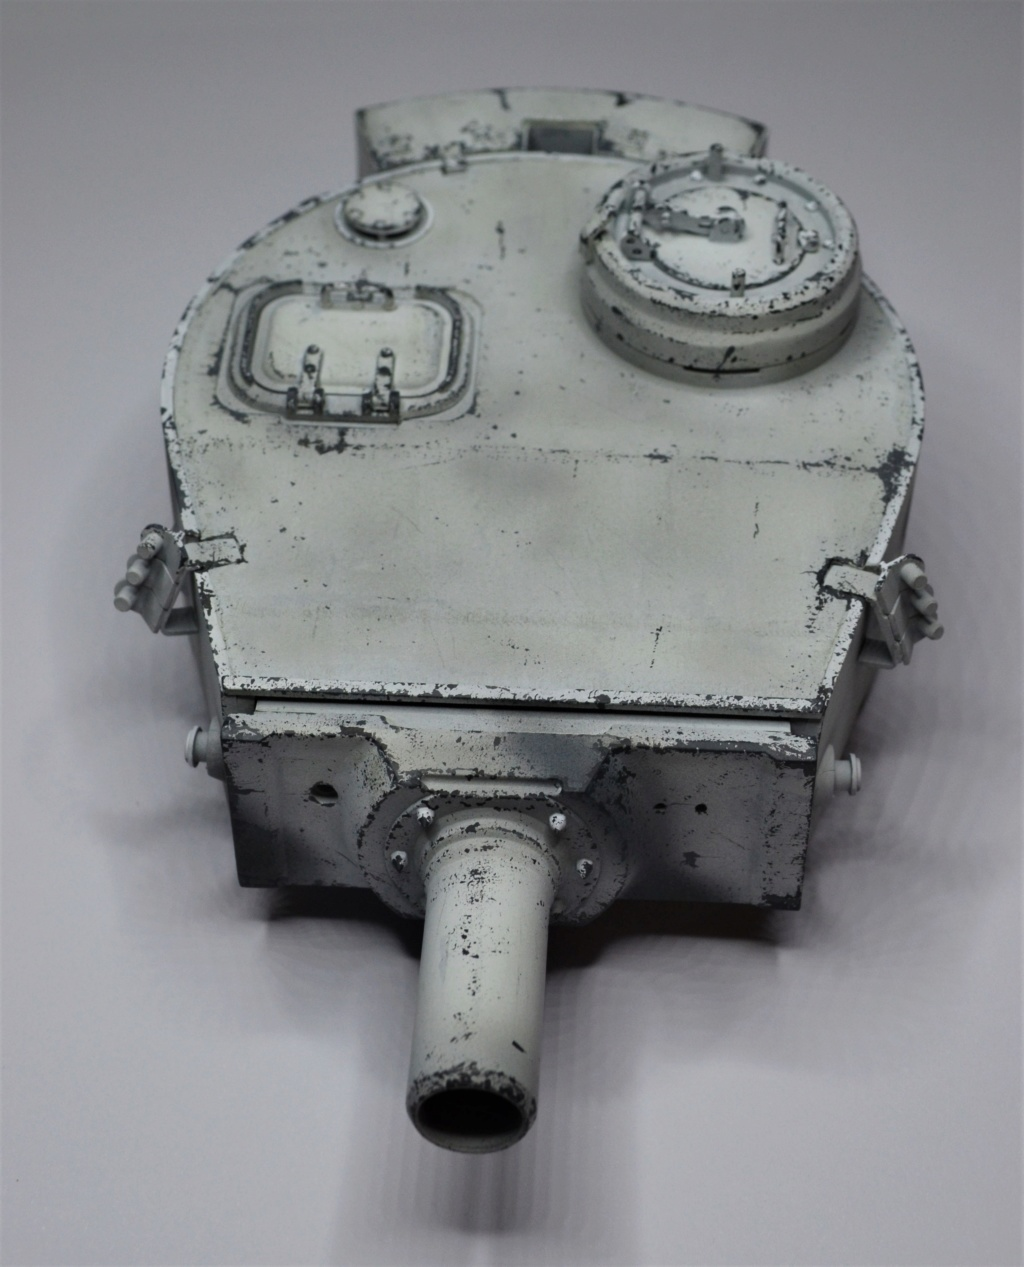 tiger - Tiger 1 early production Tamiya 1/25  - Page 2 Dsc_0028